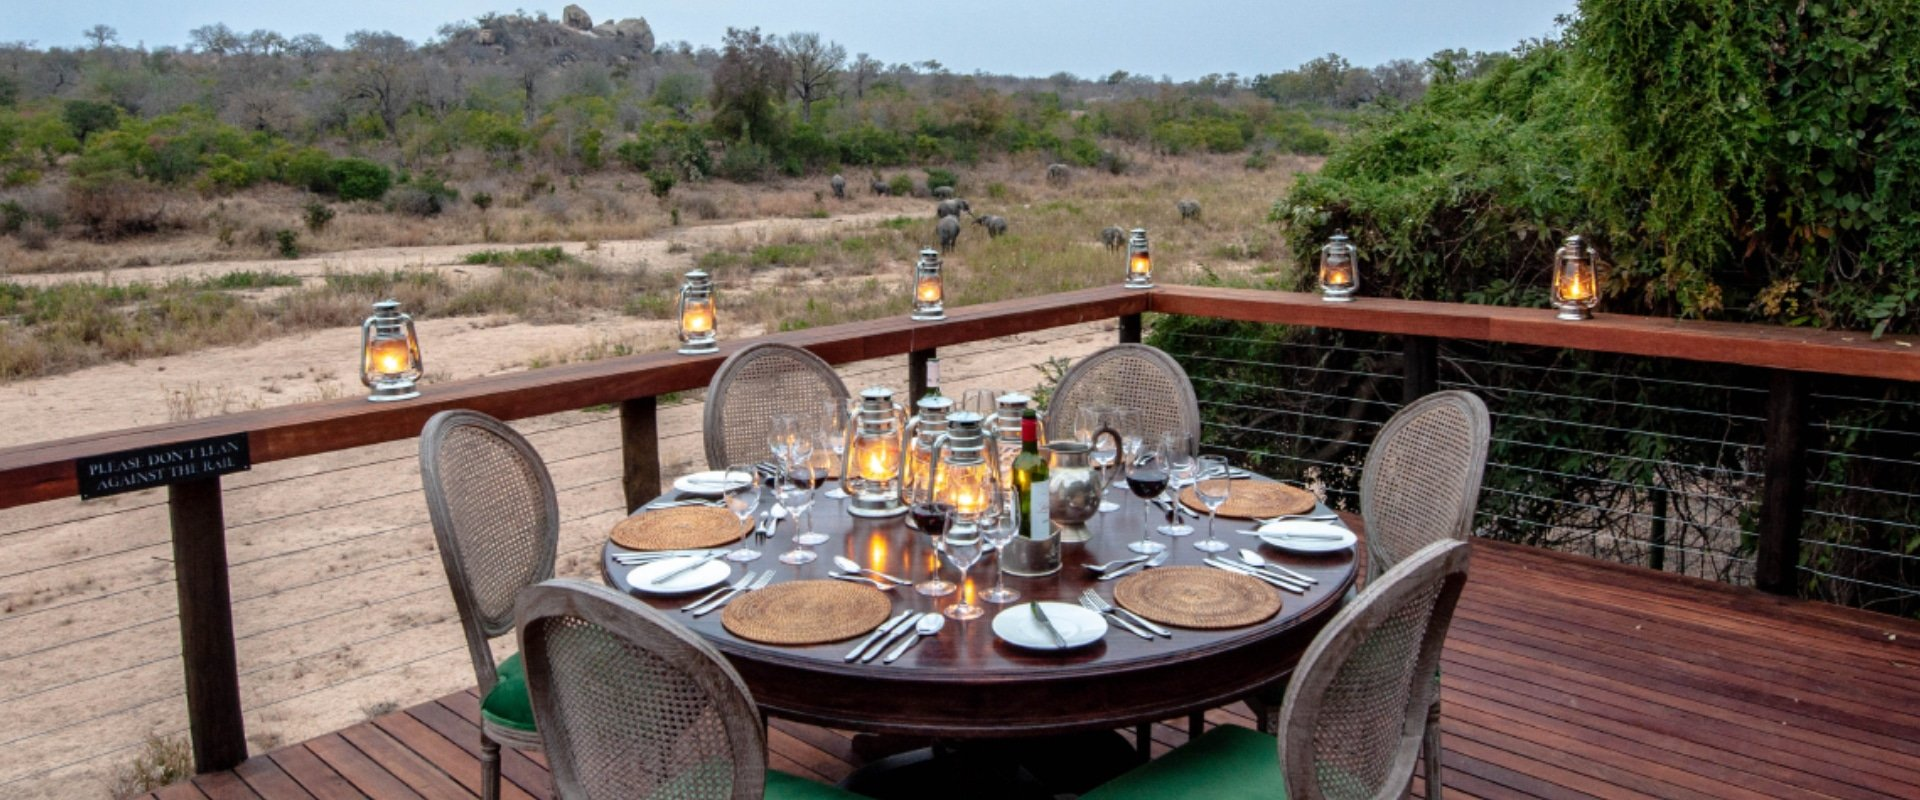 Dine under the African night sky